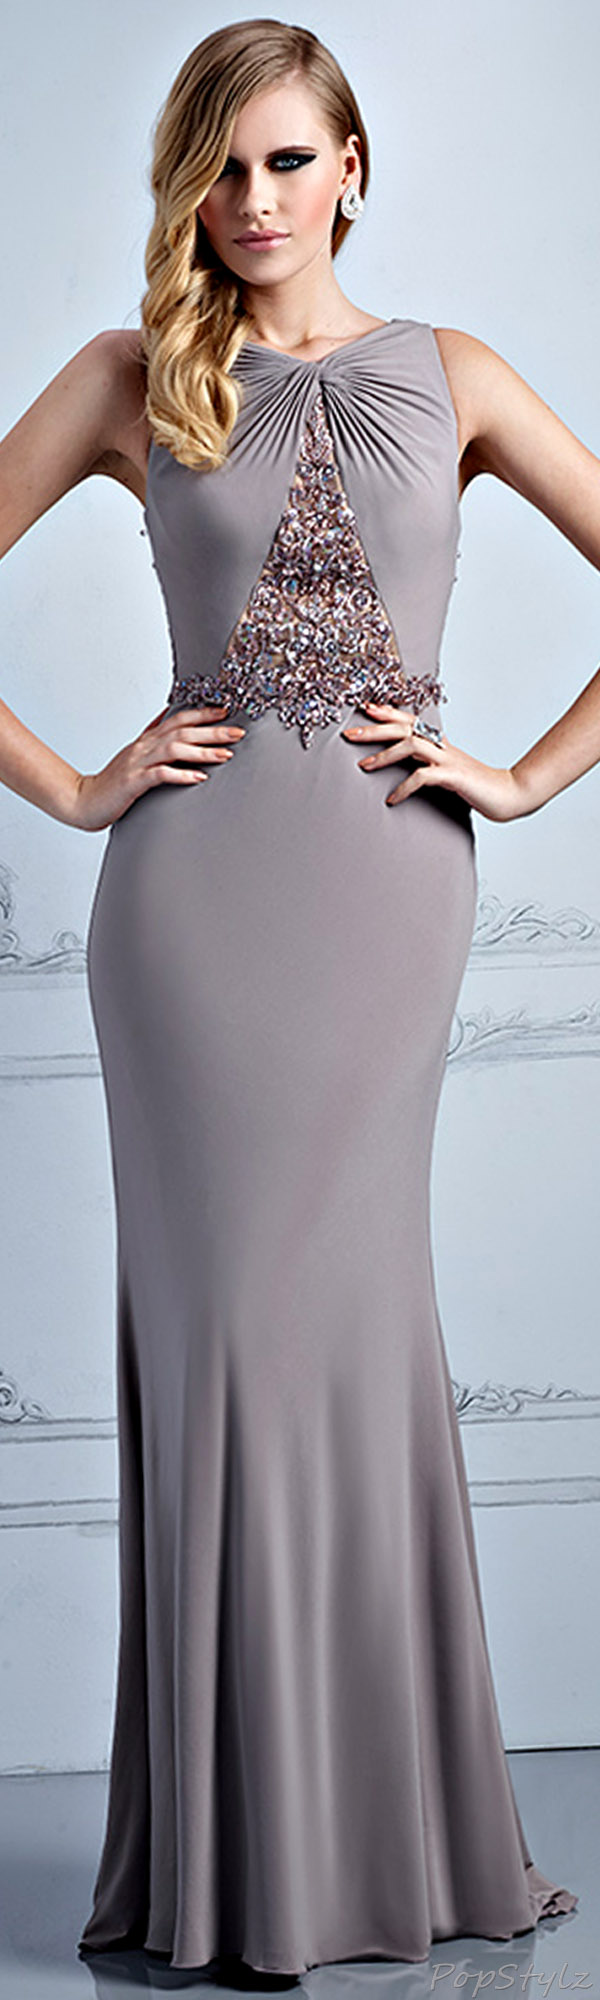 Terani Couture Taupe Dress | If I were skinny Boots;) | Pinterest ...